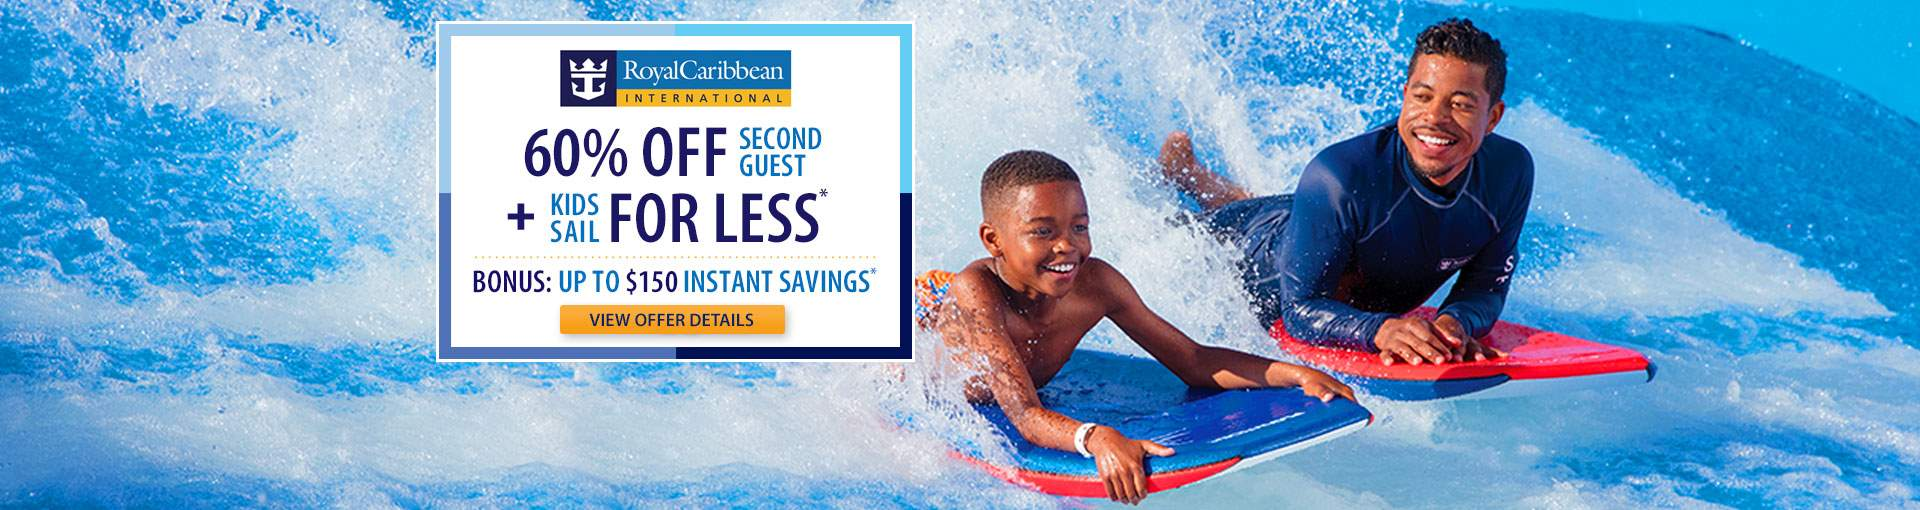 Royal Caribbean: 60% Off 2nd Guest